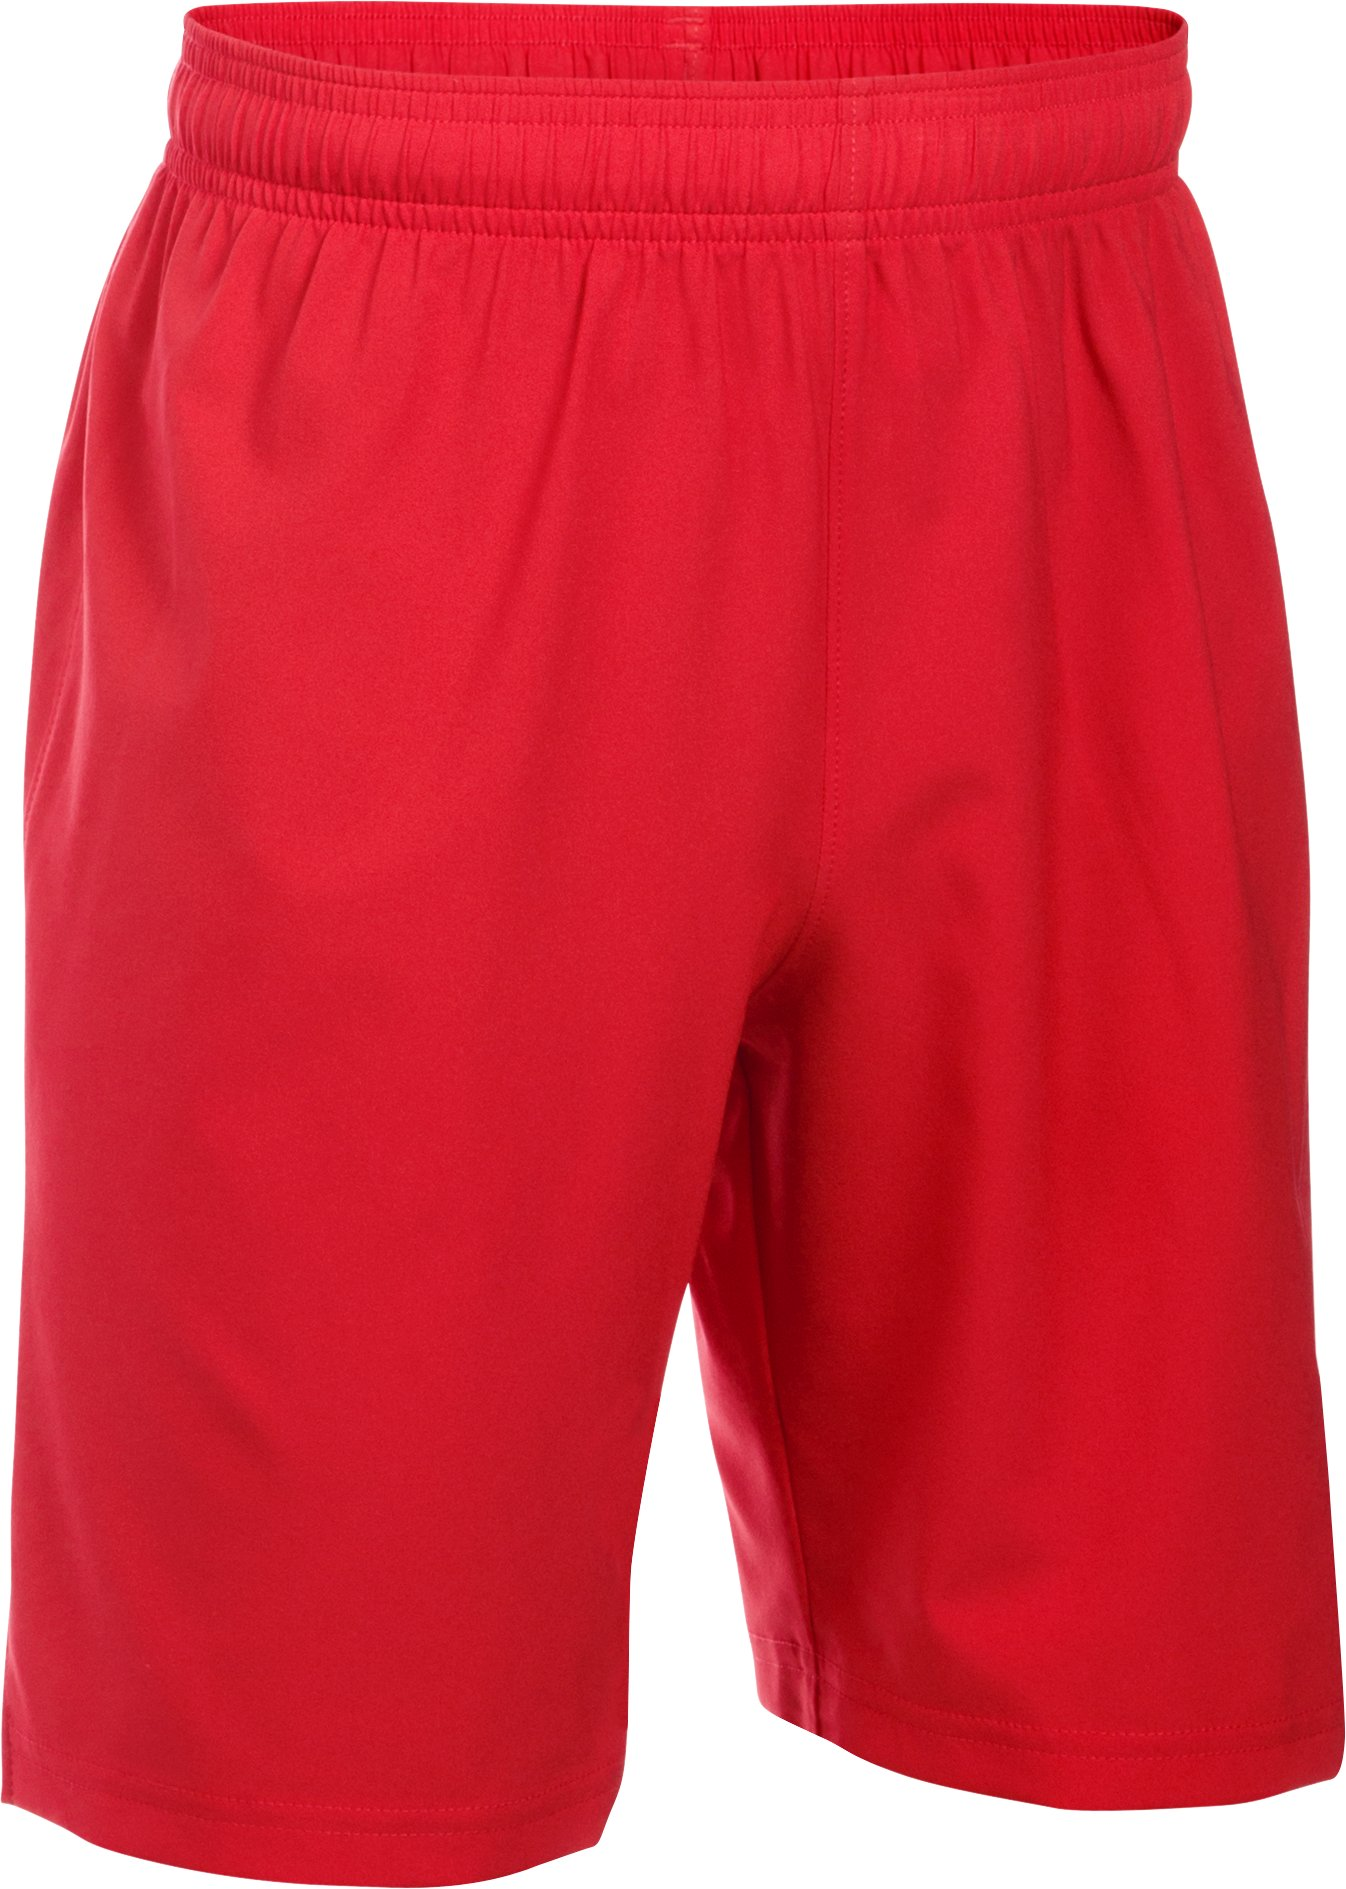 Boys' UA Hustle Shorts, Red